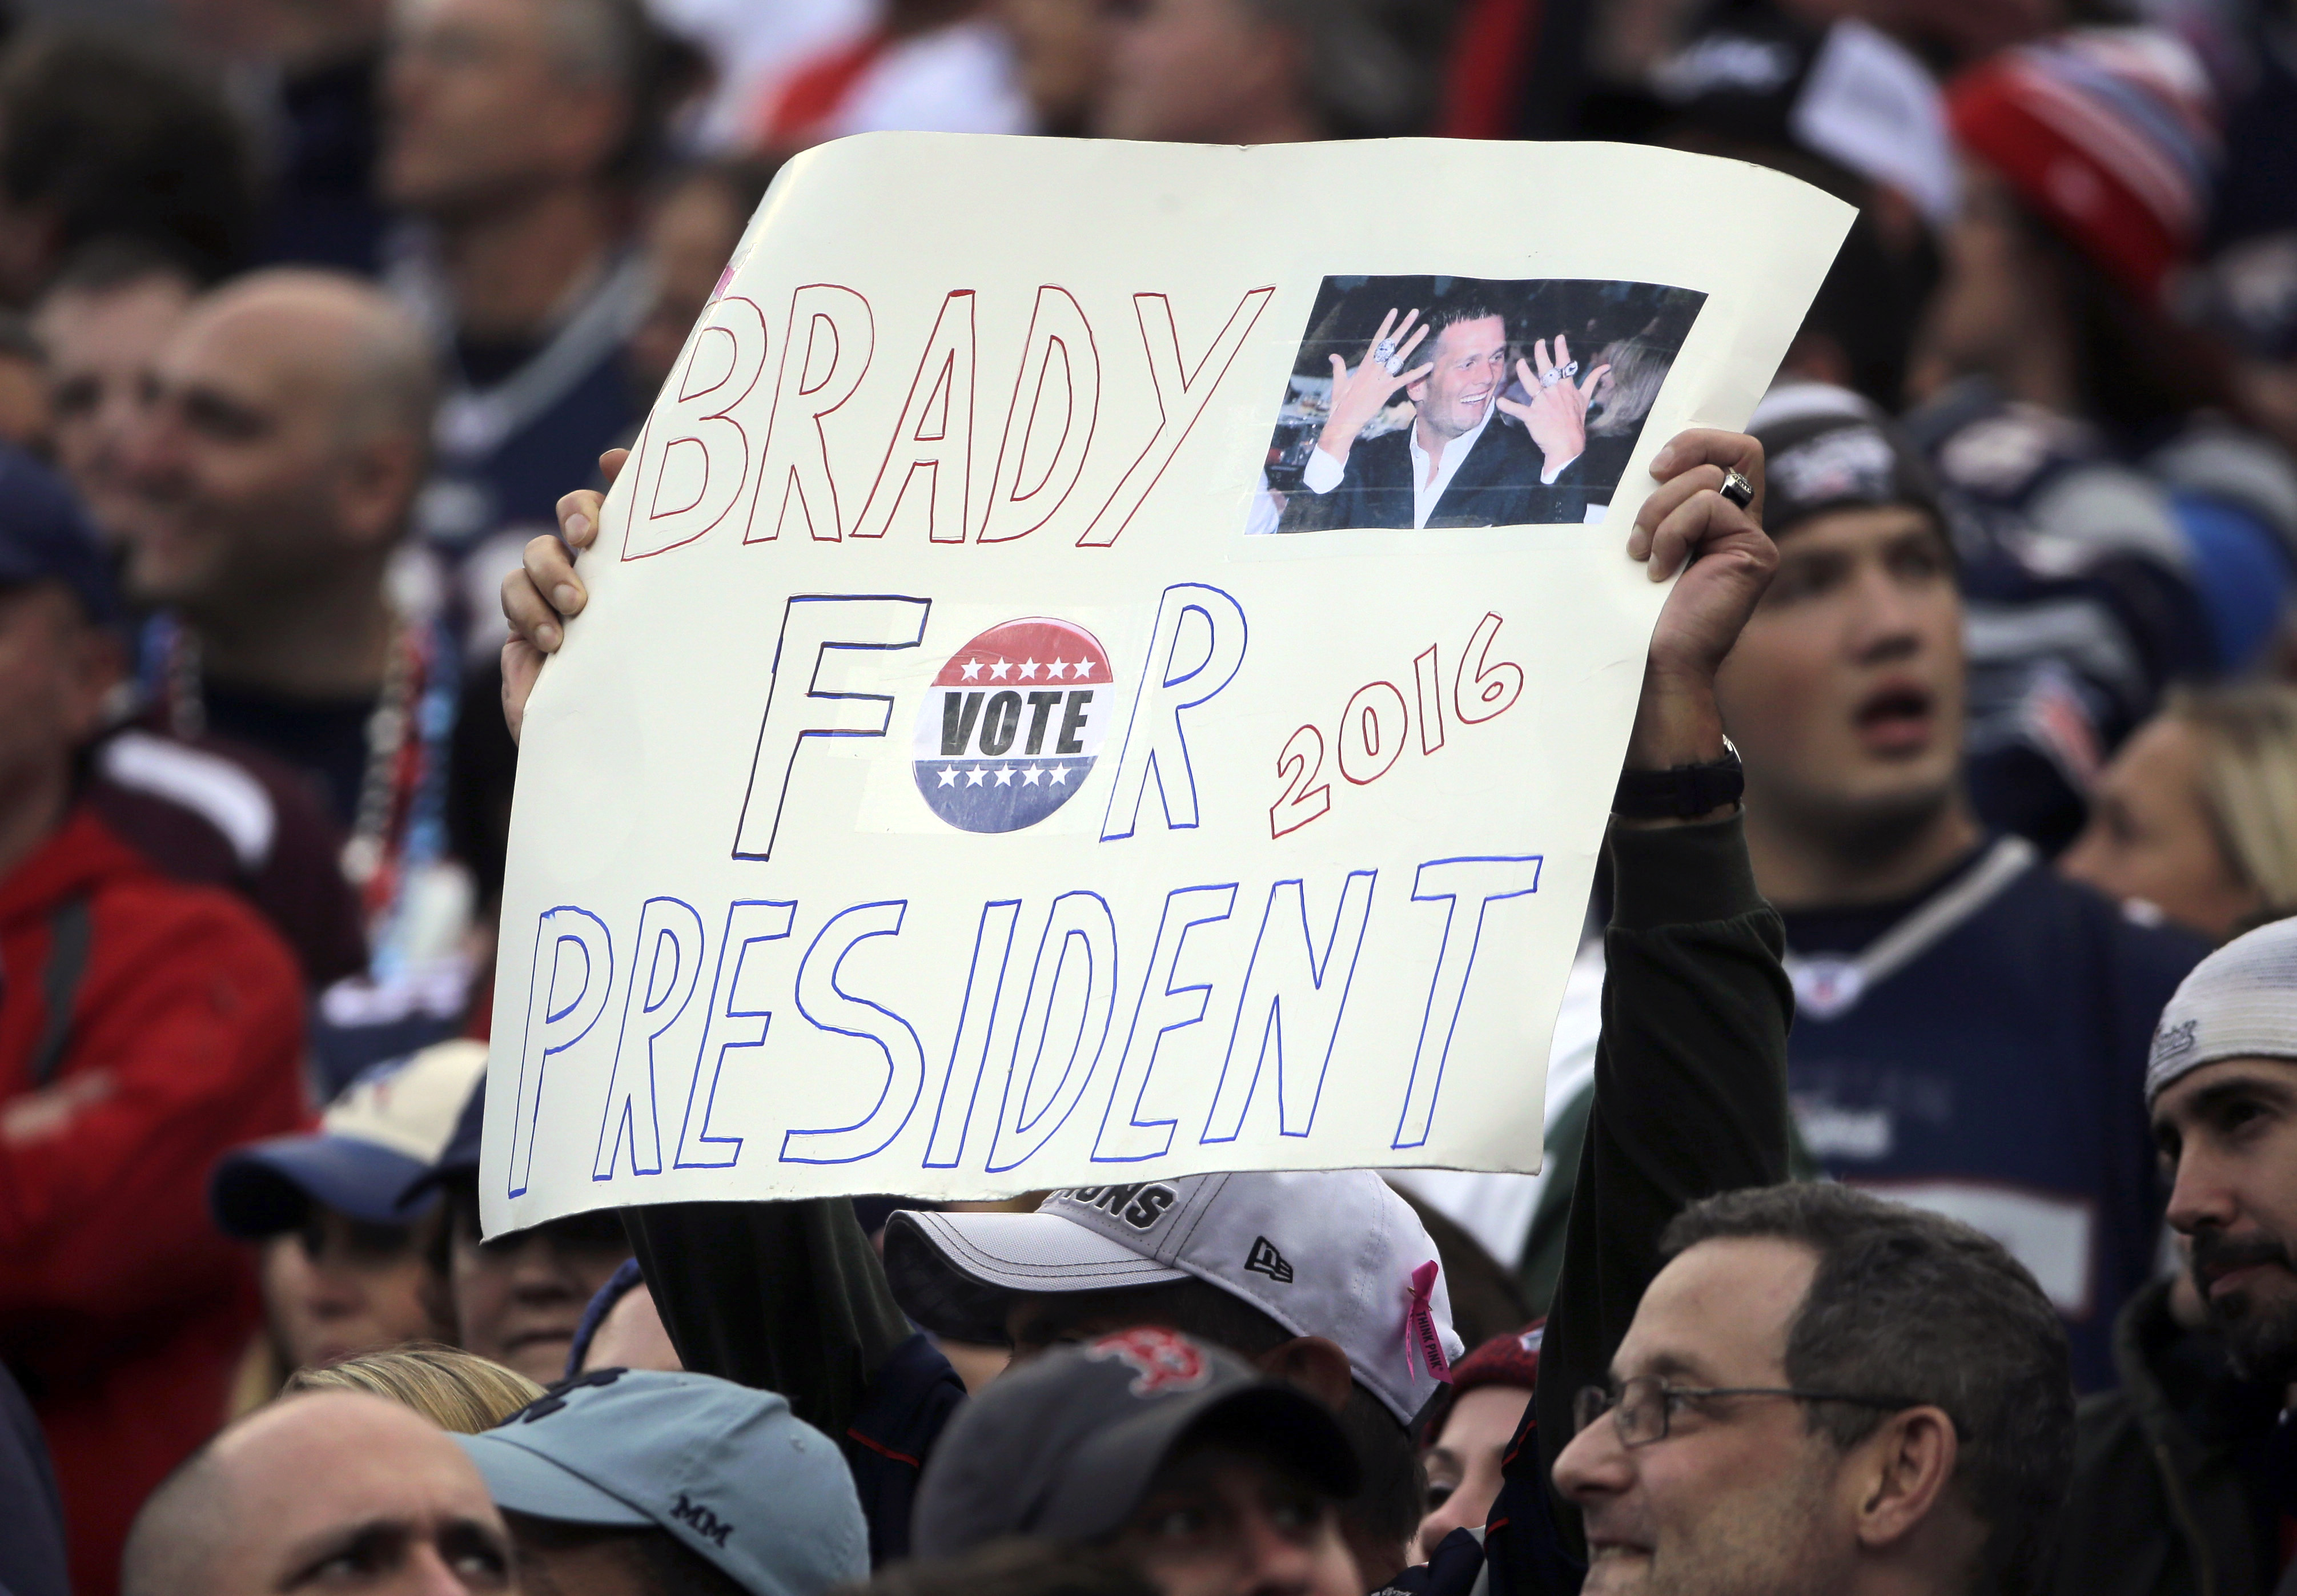 FILE - In this Oct. 25, 2015 file photo, a New England Patriots fan holds a sign that supports Patriots quarterback Tom Brady for president during an NFL football game against the New York Jets in Foxborough, Mass. GQ magazine asked Brady, its 2015 Man of